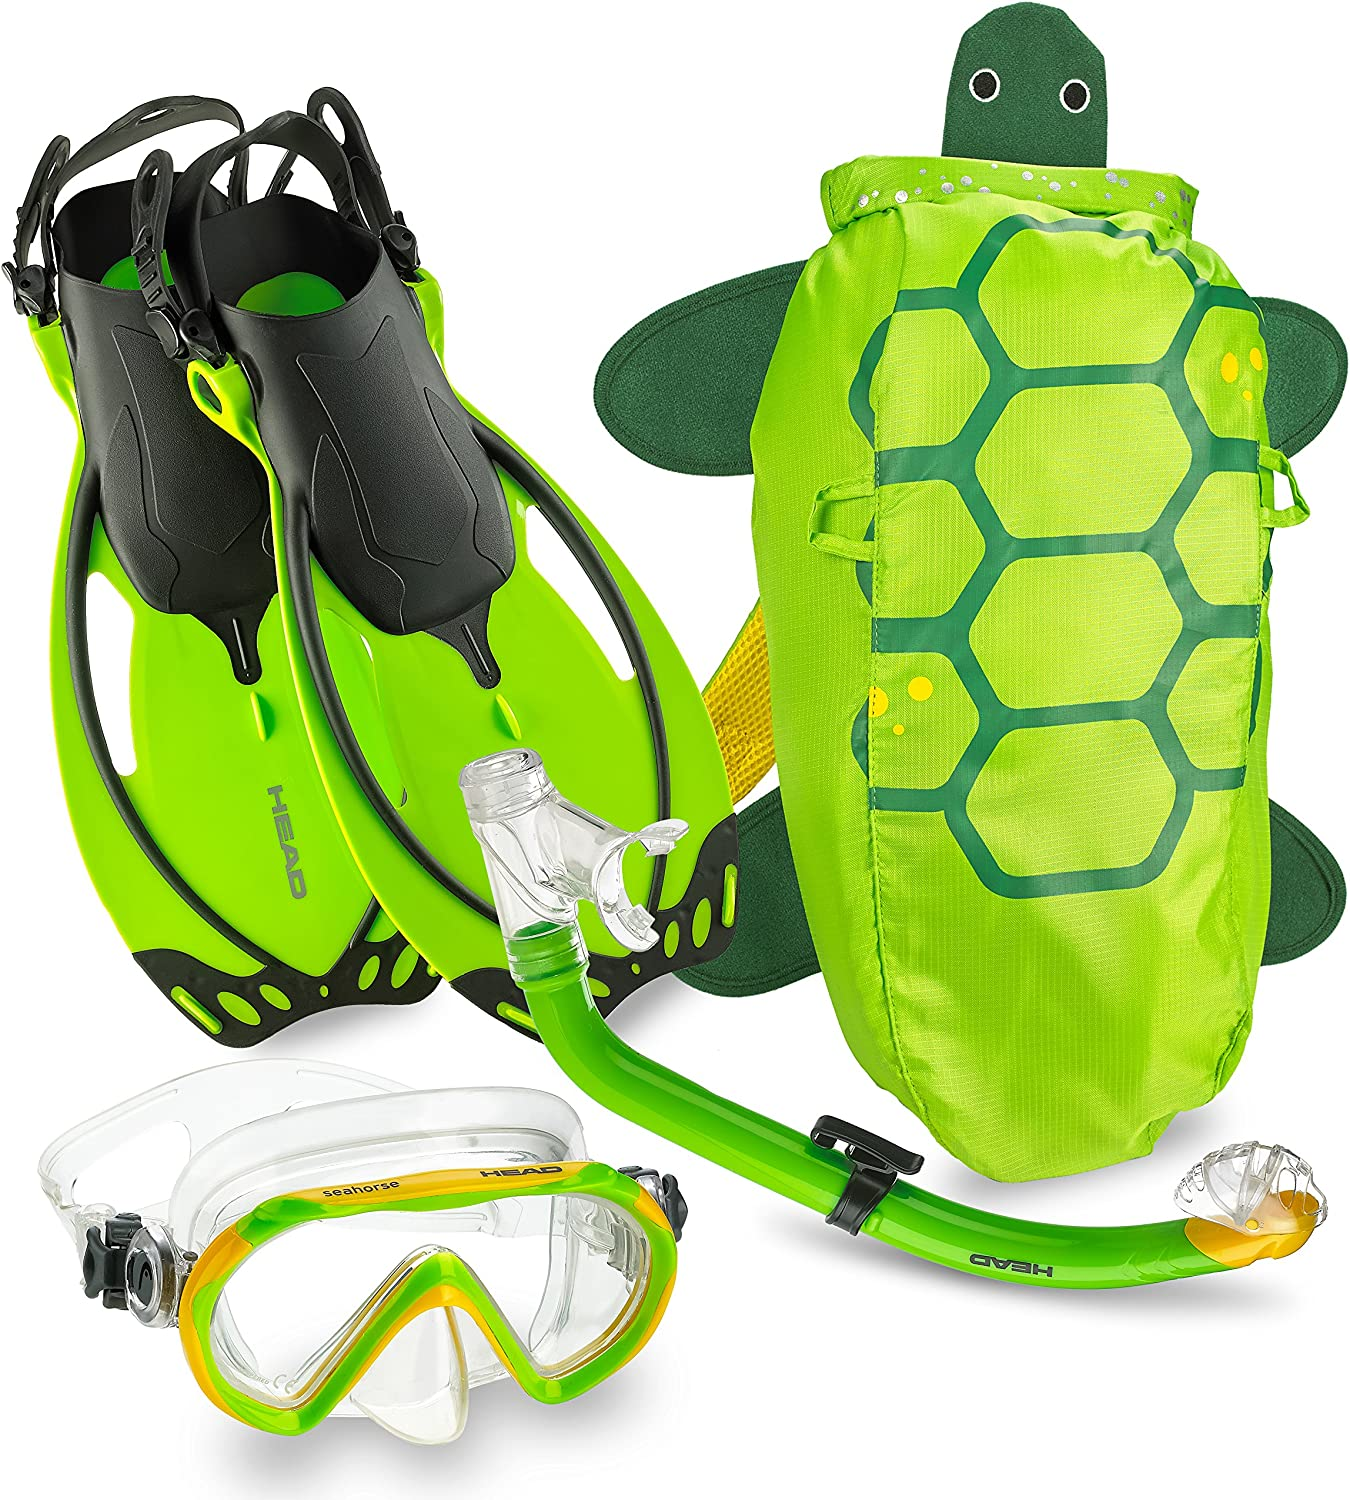 Top 10 Best Kids Snorkel Sets You Can Choose From For Your Children 4